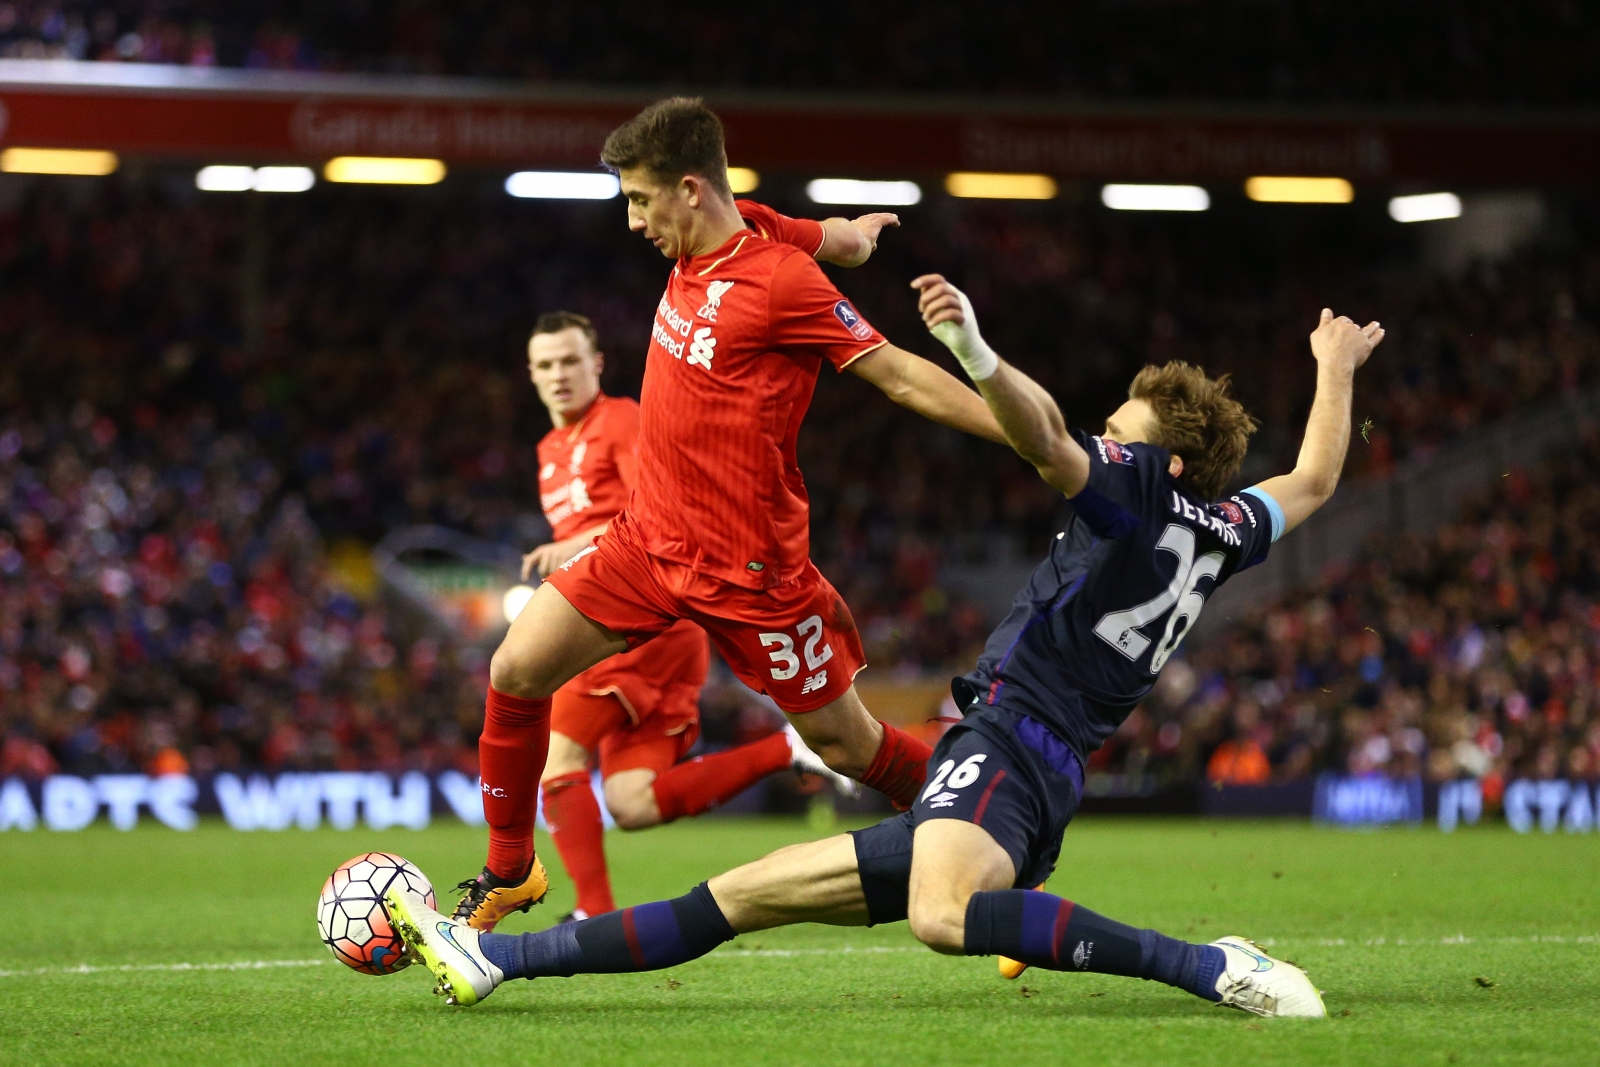 Liverpool's Cameron Brannagan joins Oxford